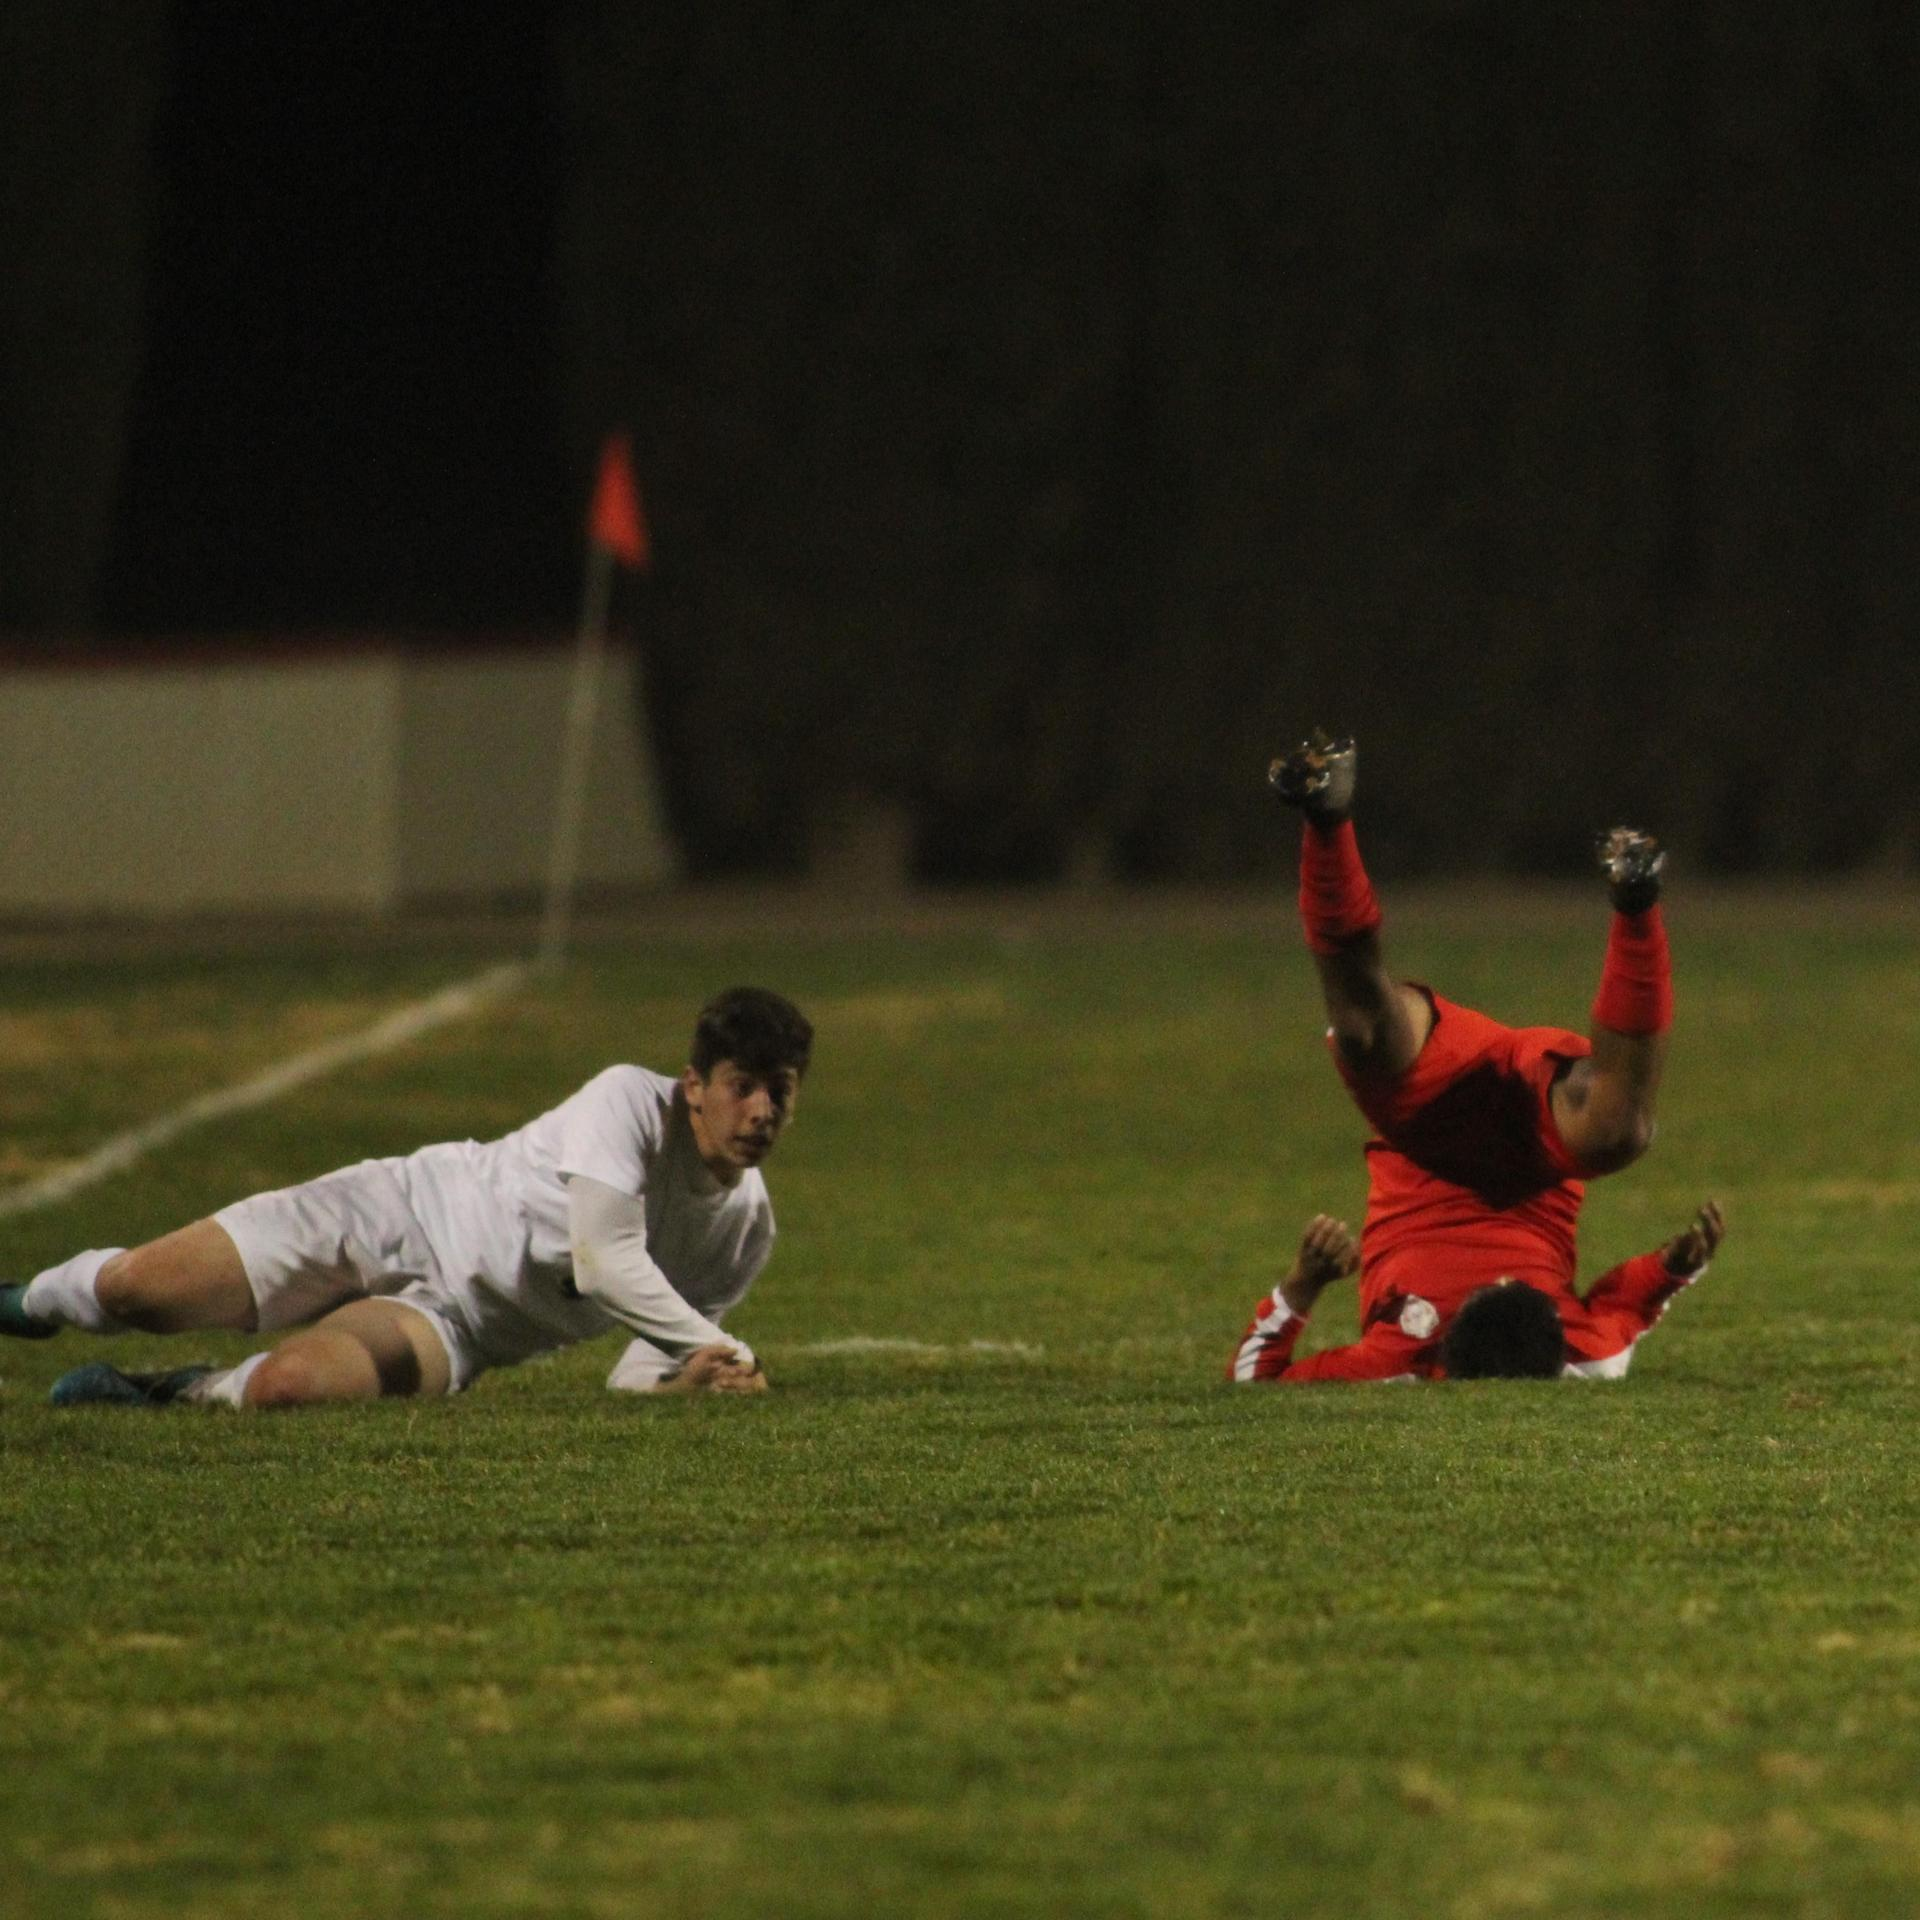 Alejandro Montes Laying on the Ground